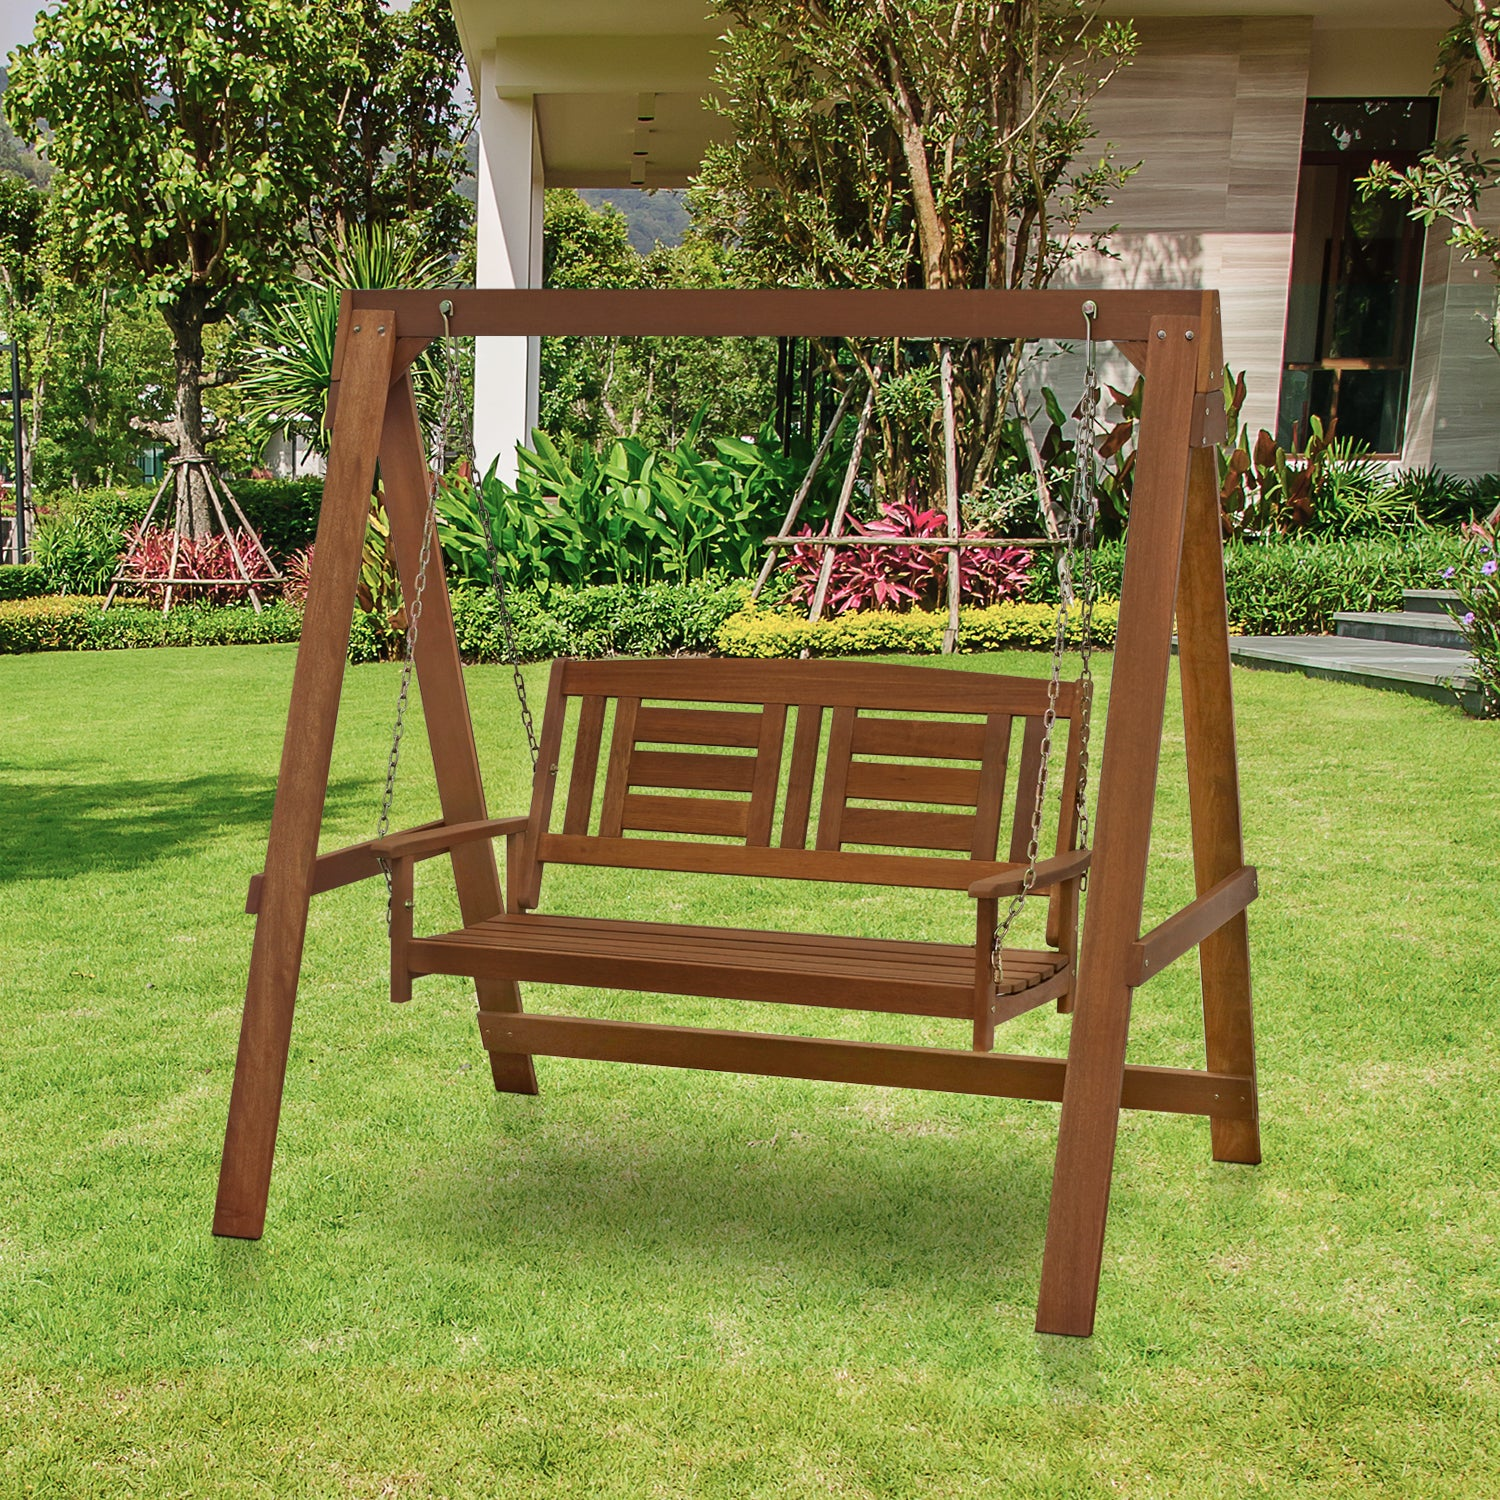 Shop Furinno Tioman Hardwood Hanging Porch Swing With Stand In Teak Oil,  FG16409   On Sale   Free Shipping Today   Overstock.com   15645265